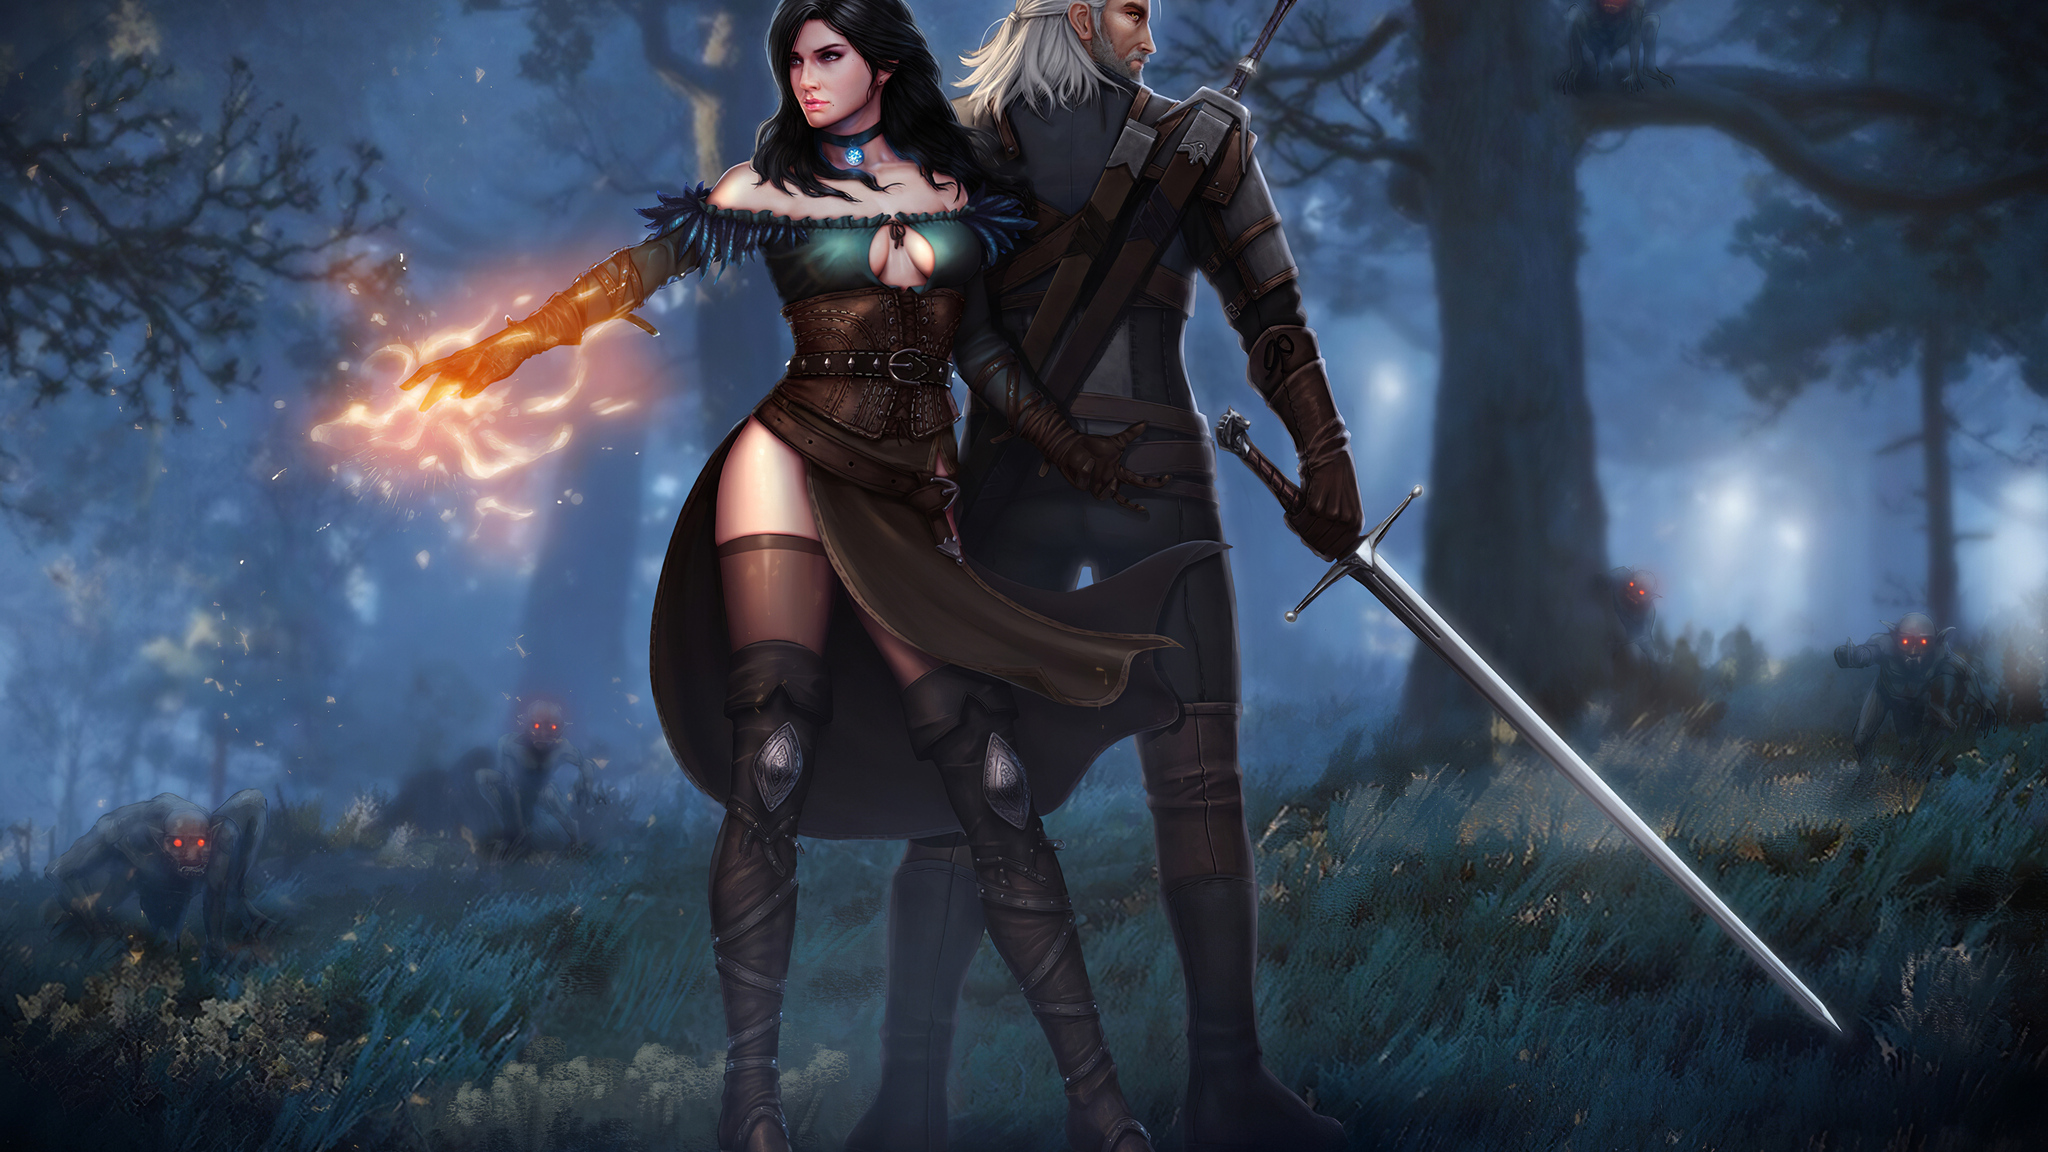 2048x1152 Witcher 3 Wild Hunt Geralt Yen And Ciri 4k 2048x1152